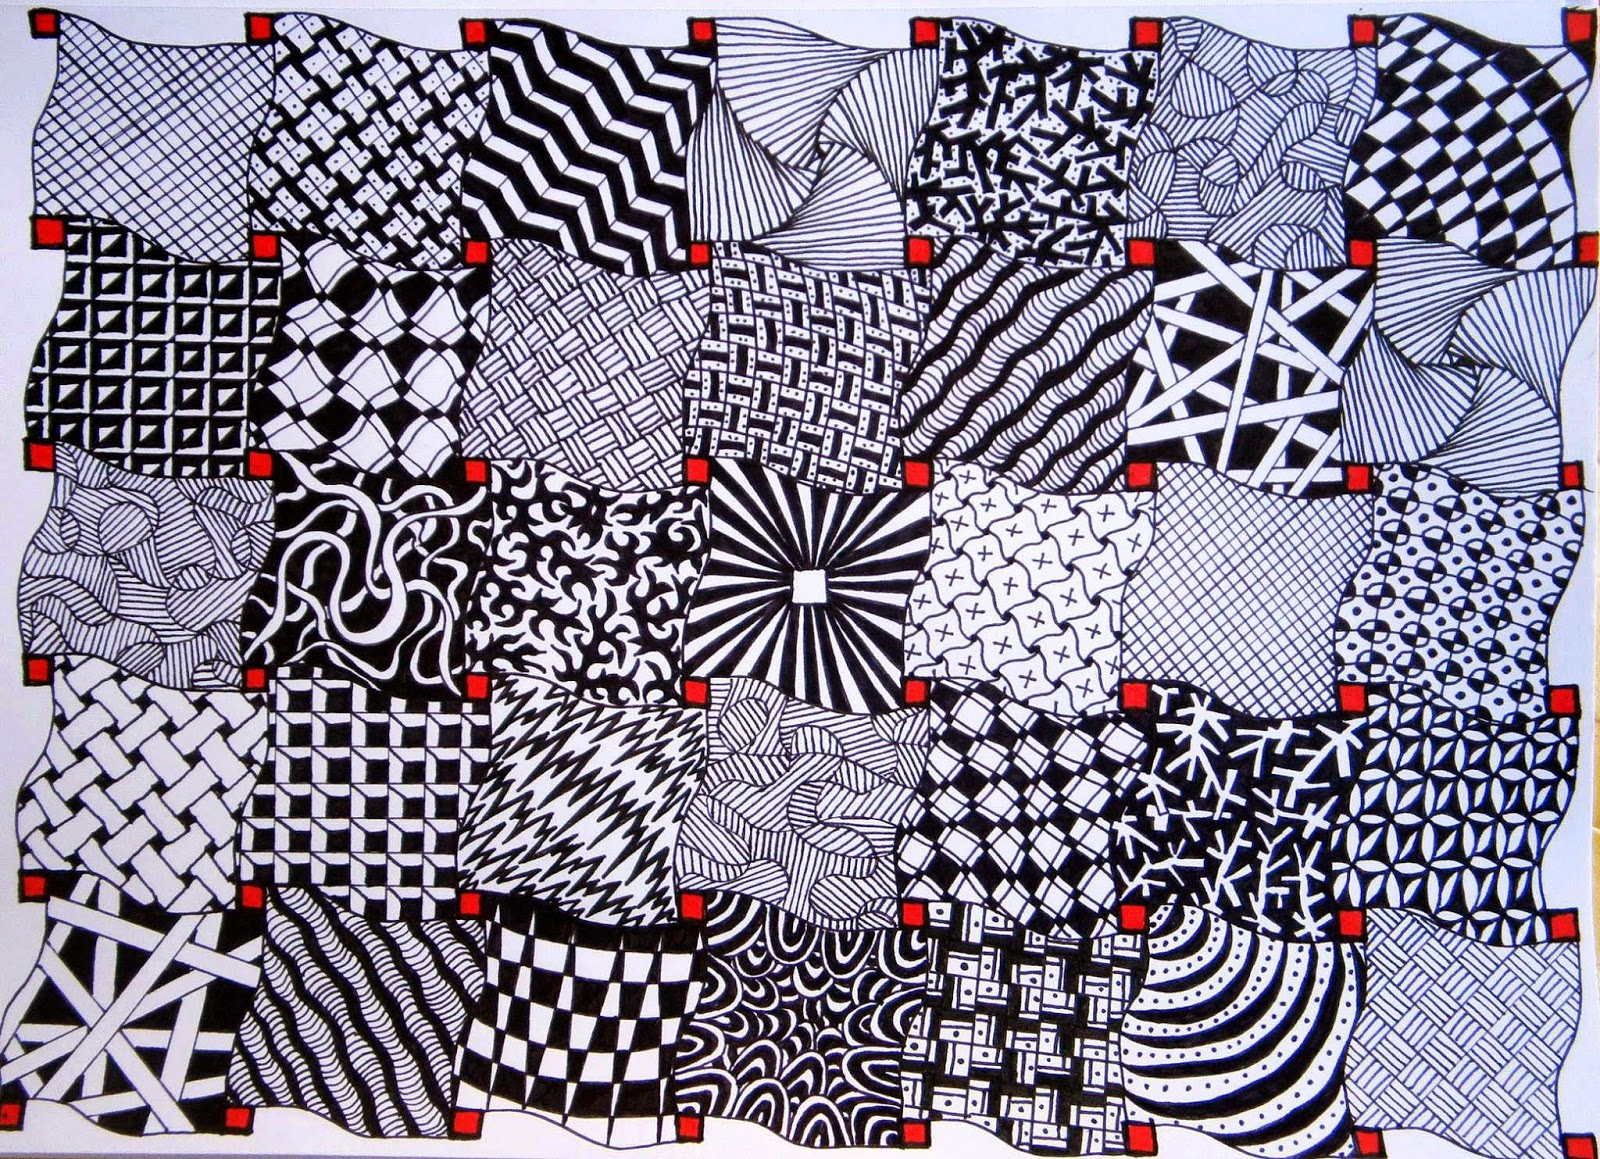 zentangle, zendoodle, zendoodling